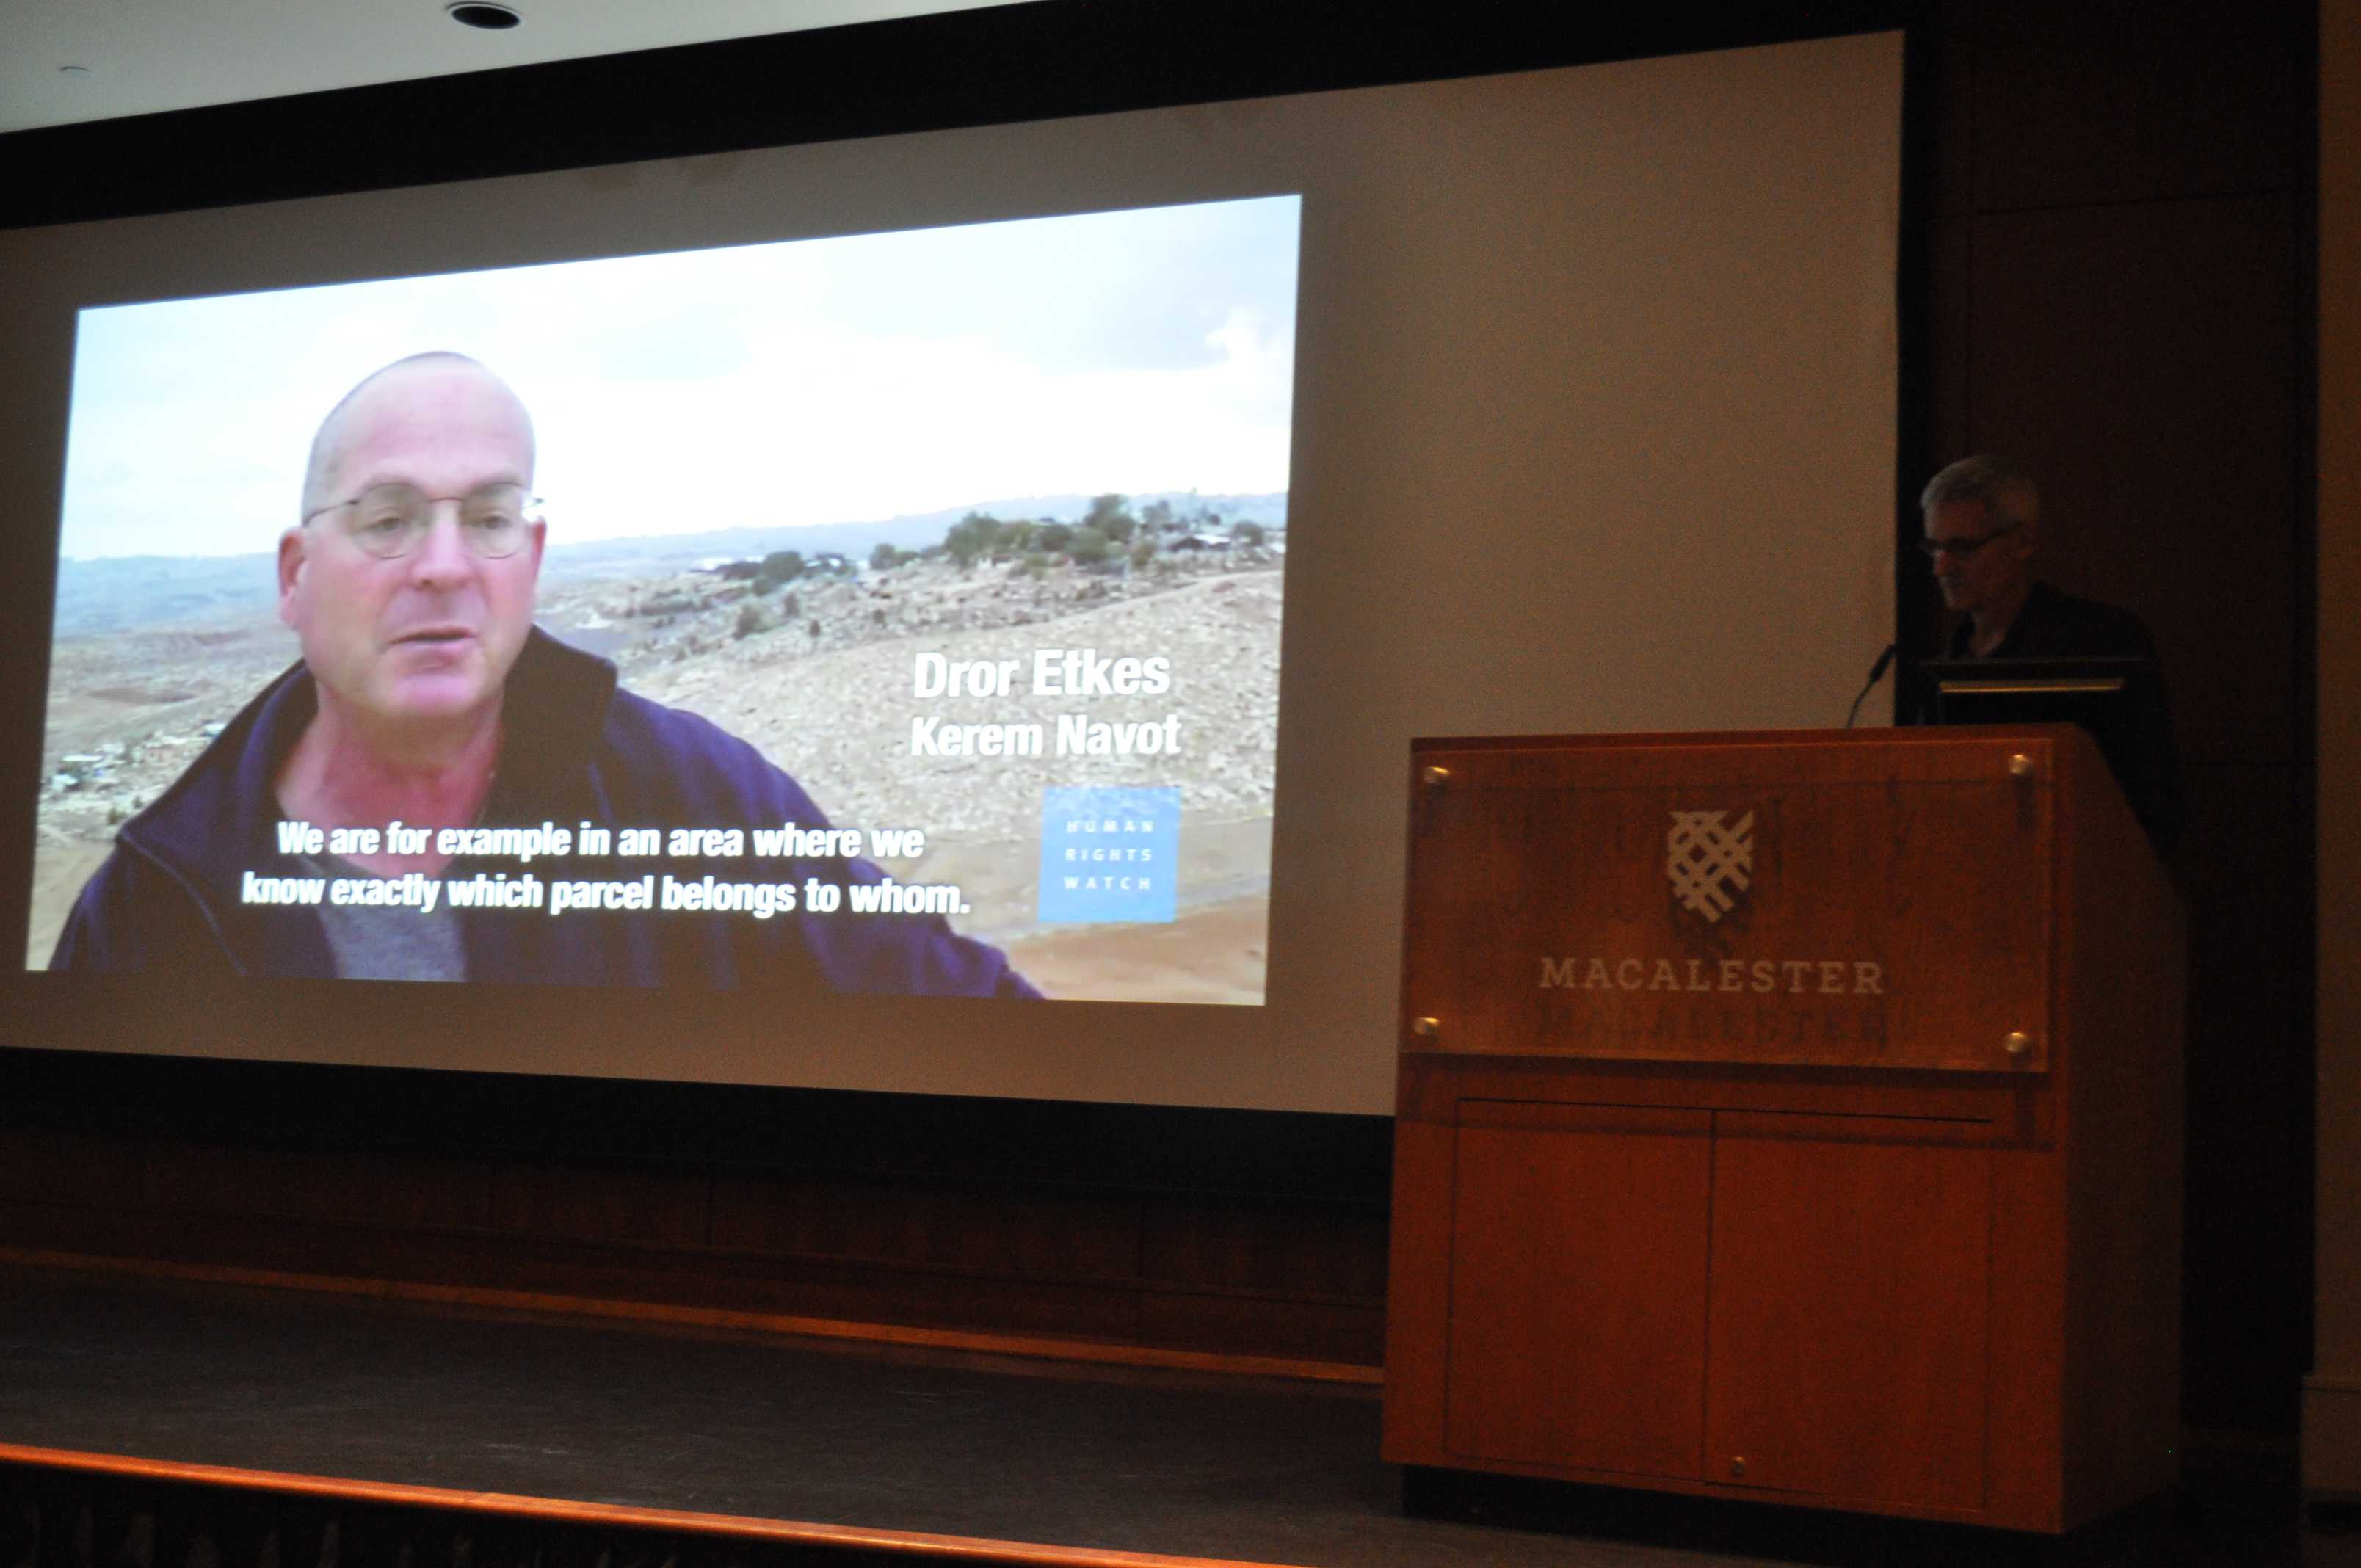 Eric Goldstein, deputy director of Human Rights Watch, spoke at Macalester on Tuesday. Photo by Malcom Cooke '21.